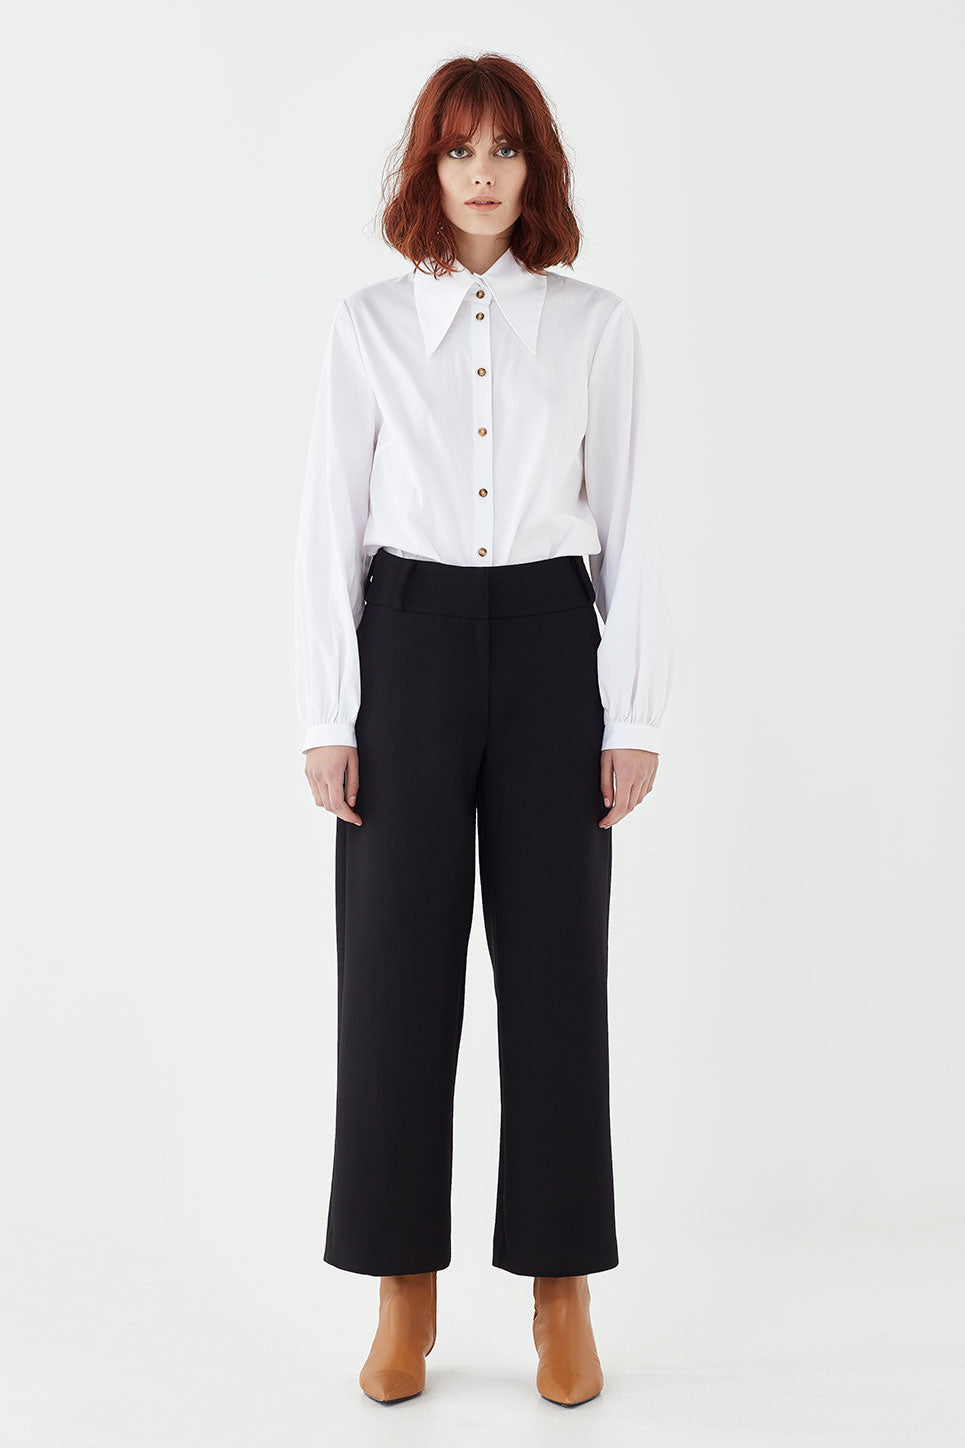 The Whitman Trouser in Black